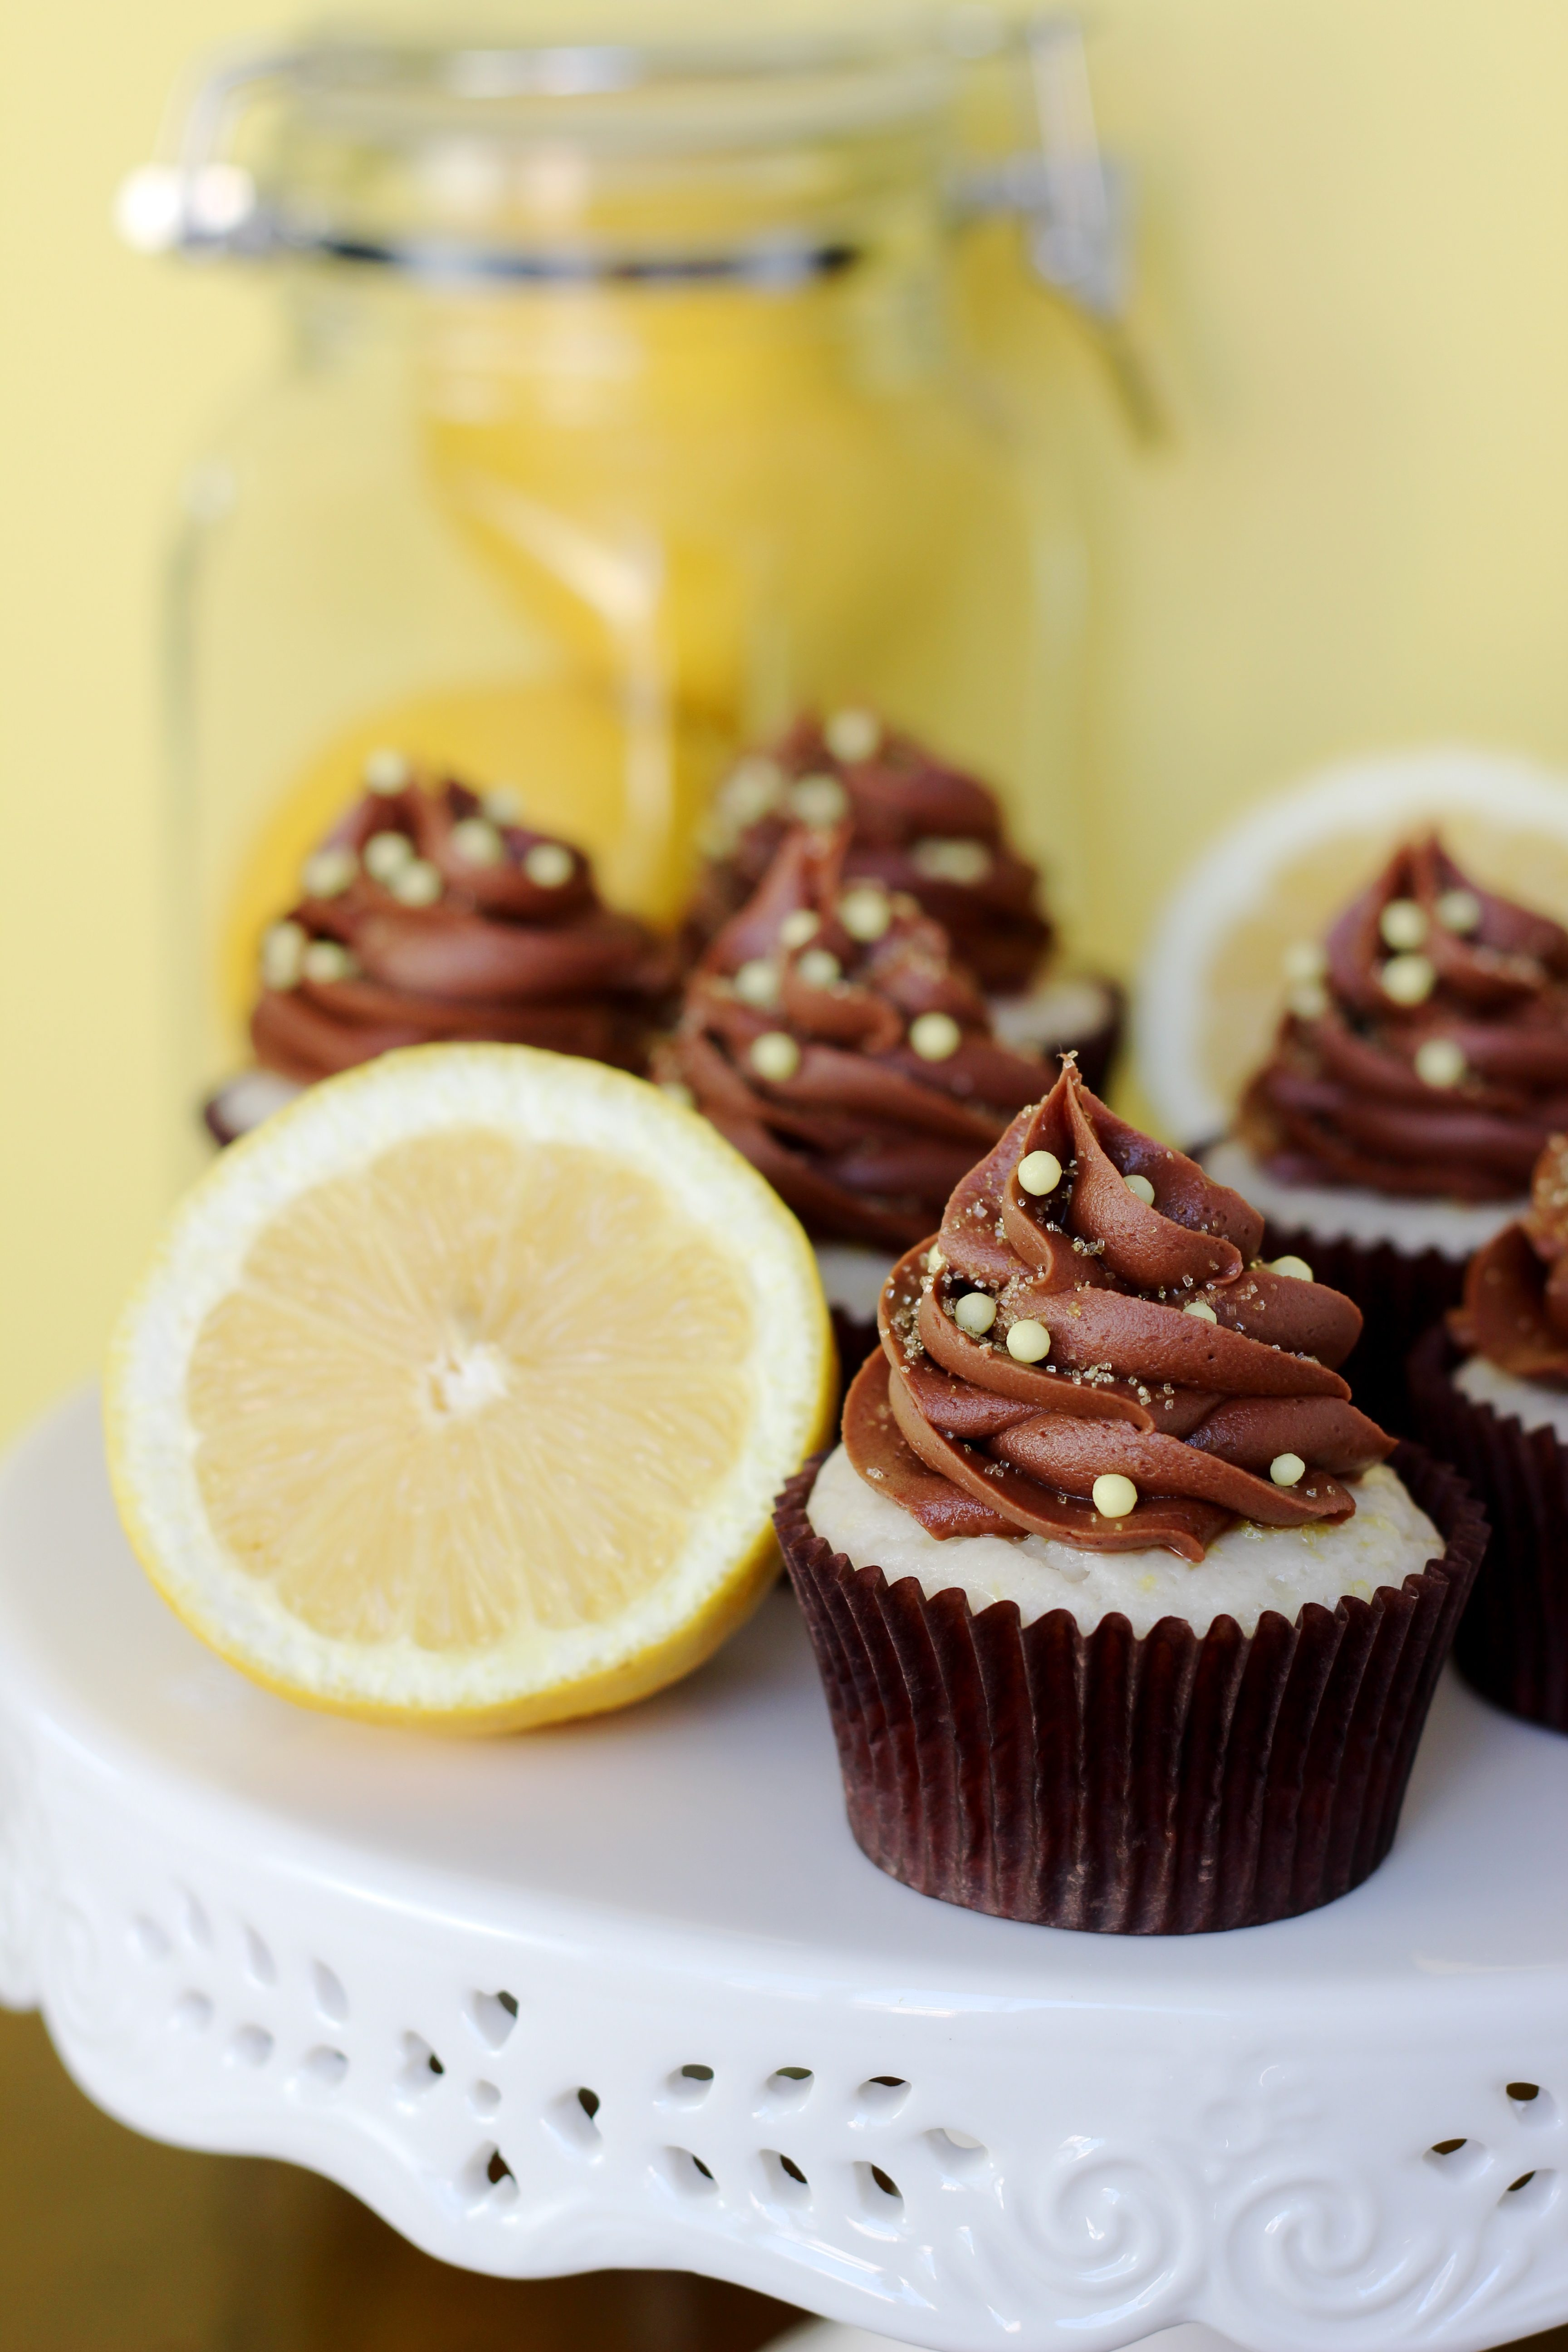 Chocolate Lemon Cupcakes Your Cup Of Cake